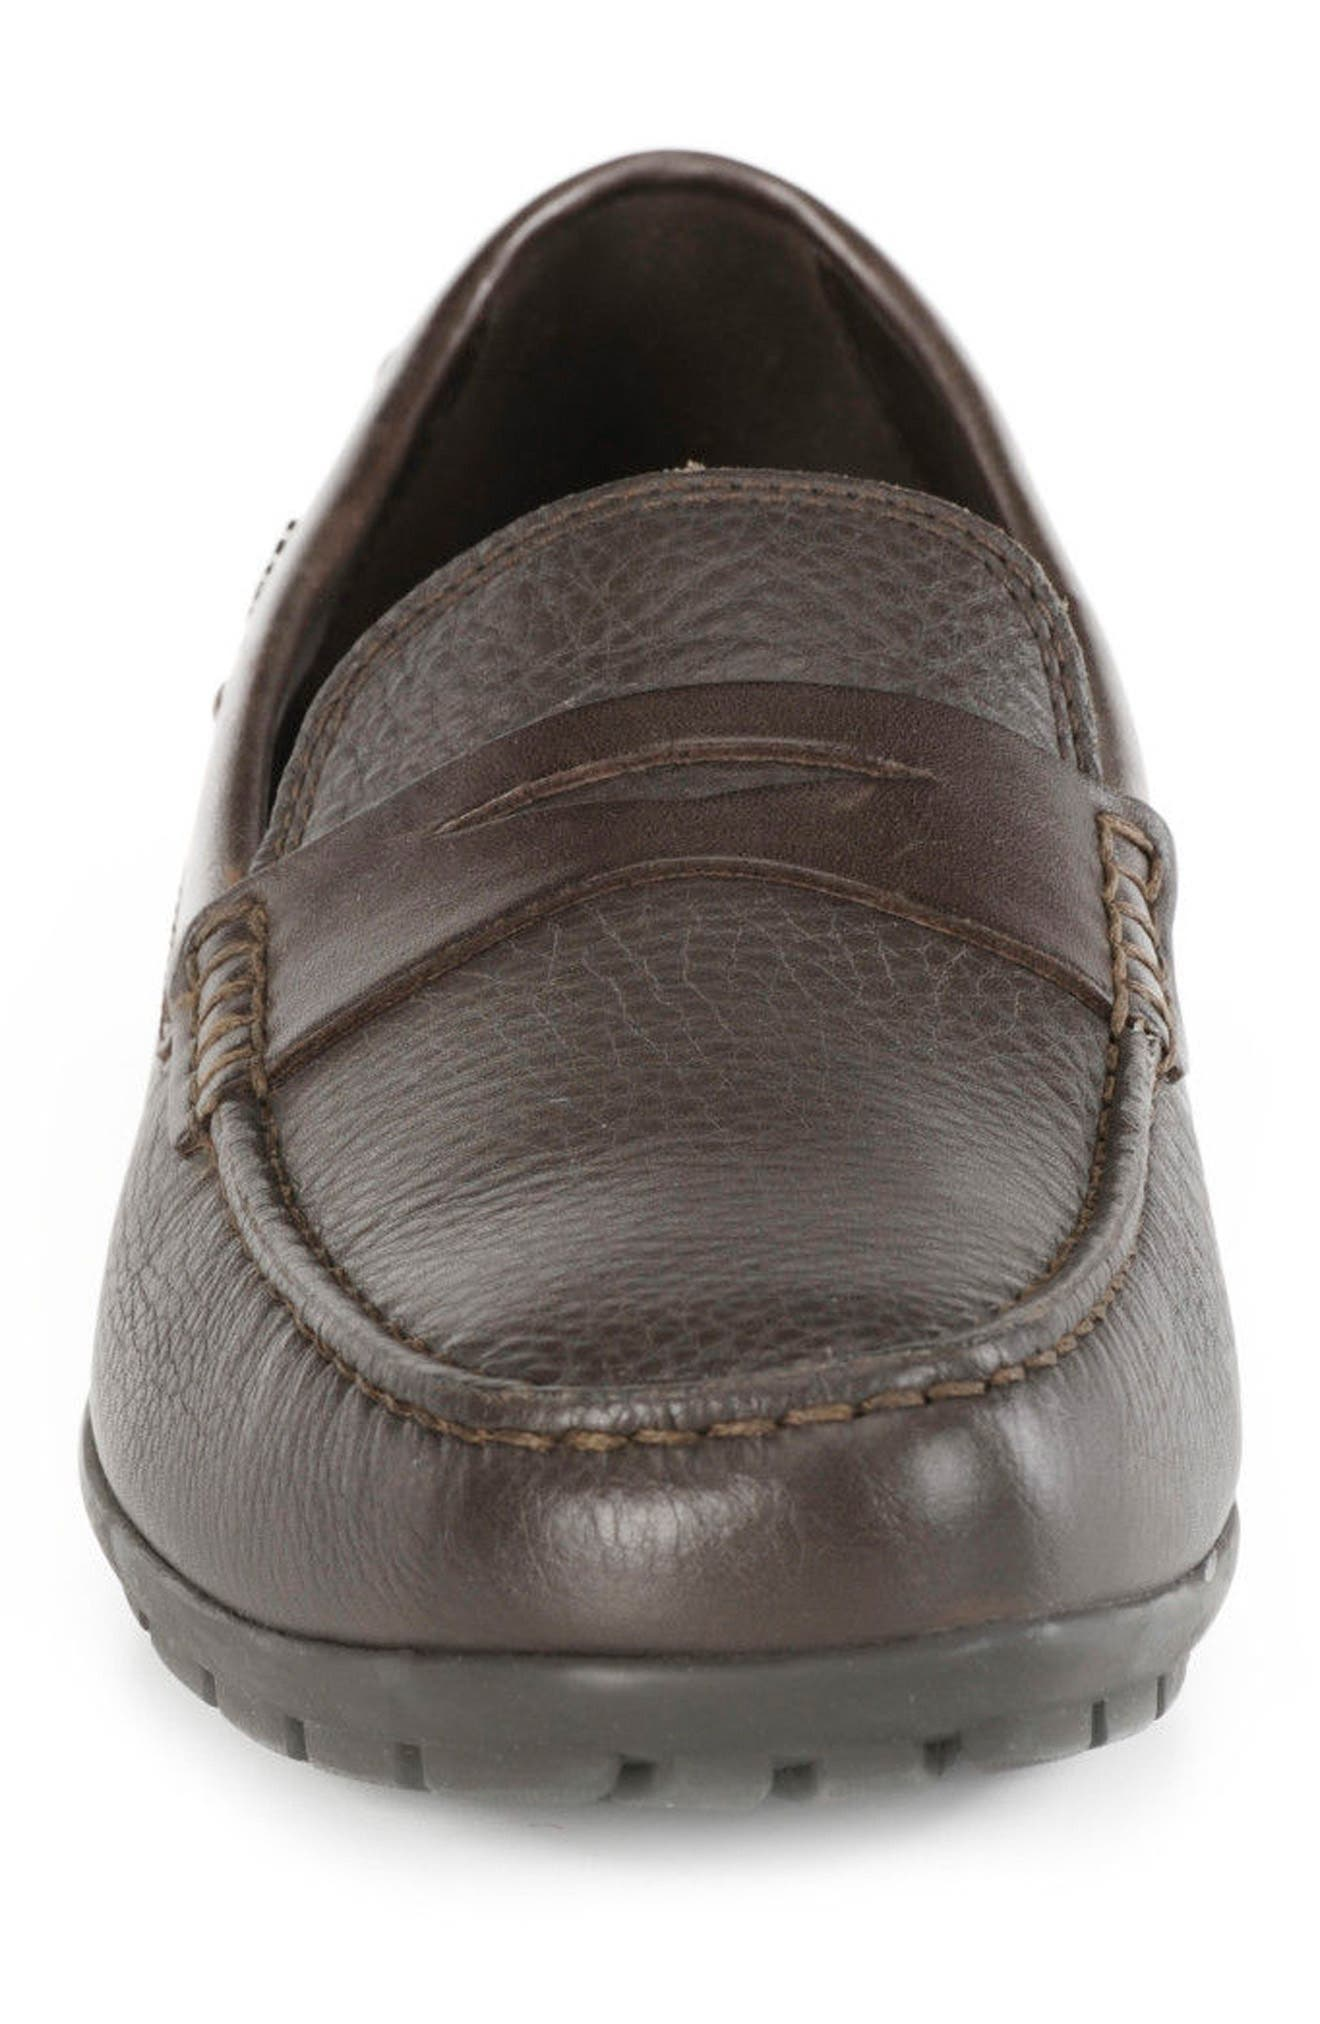 Monet W 2Fit Driving Moccasin,                             Alternate thumbnail 4, color,                             Dark Coffee/ Coffee